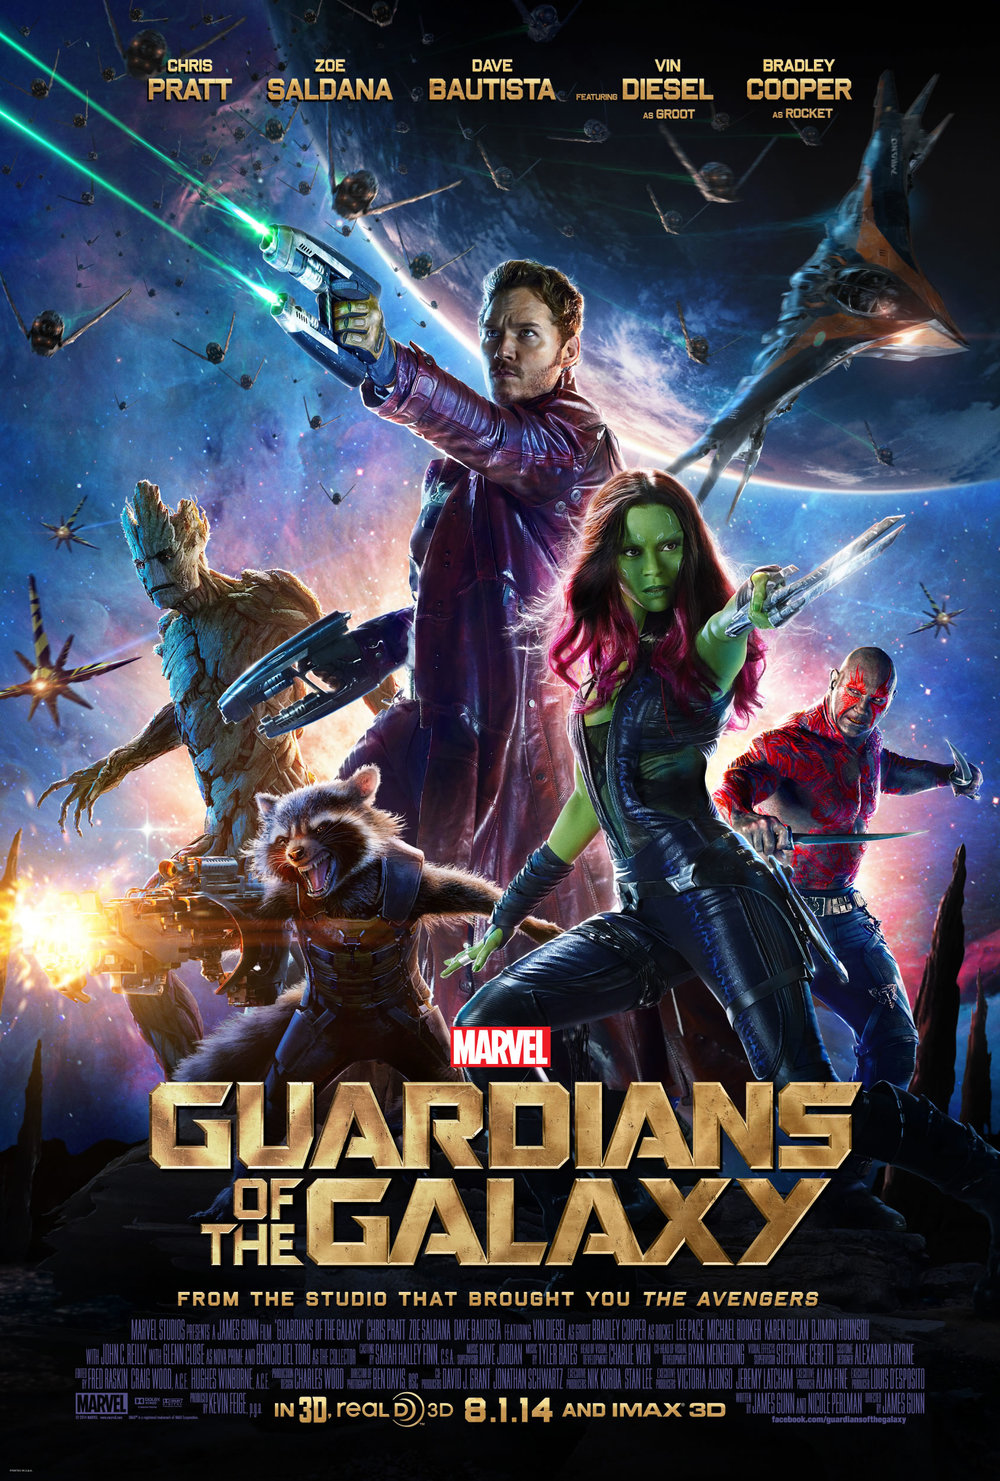 Guardians-of-the-Galaxy-Movie-Poster.jpg